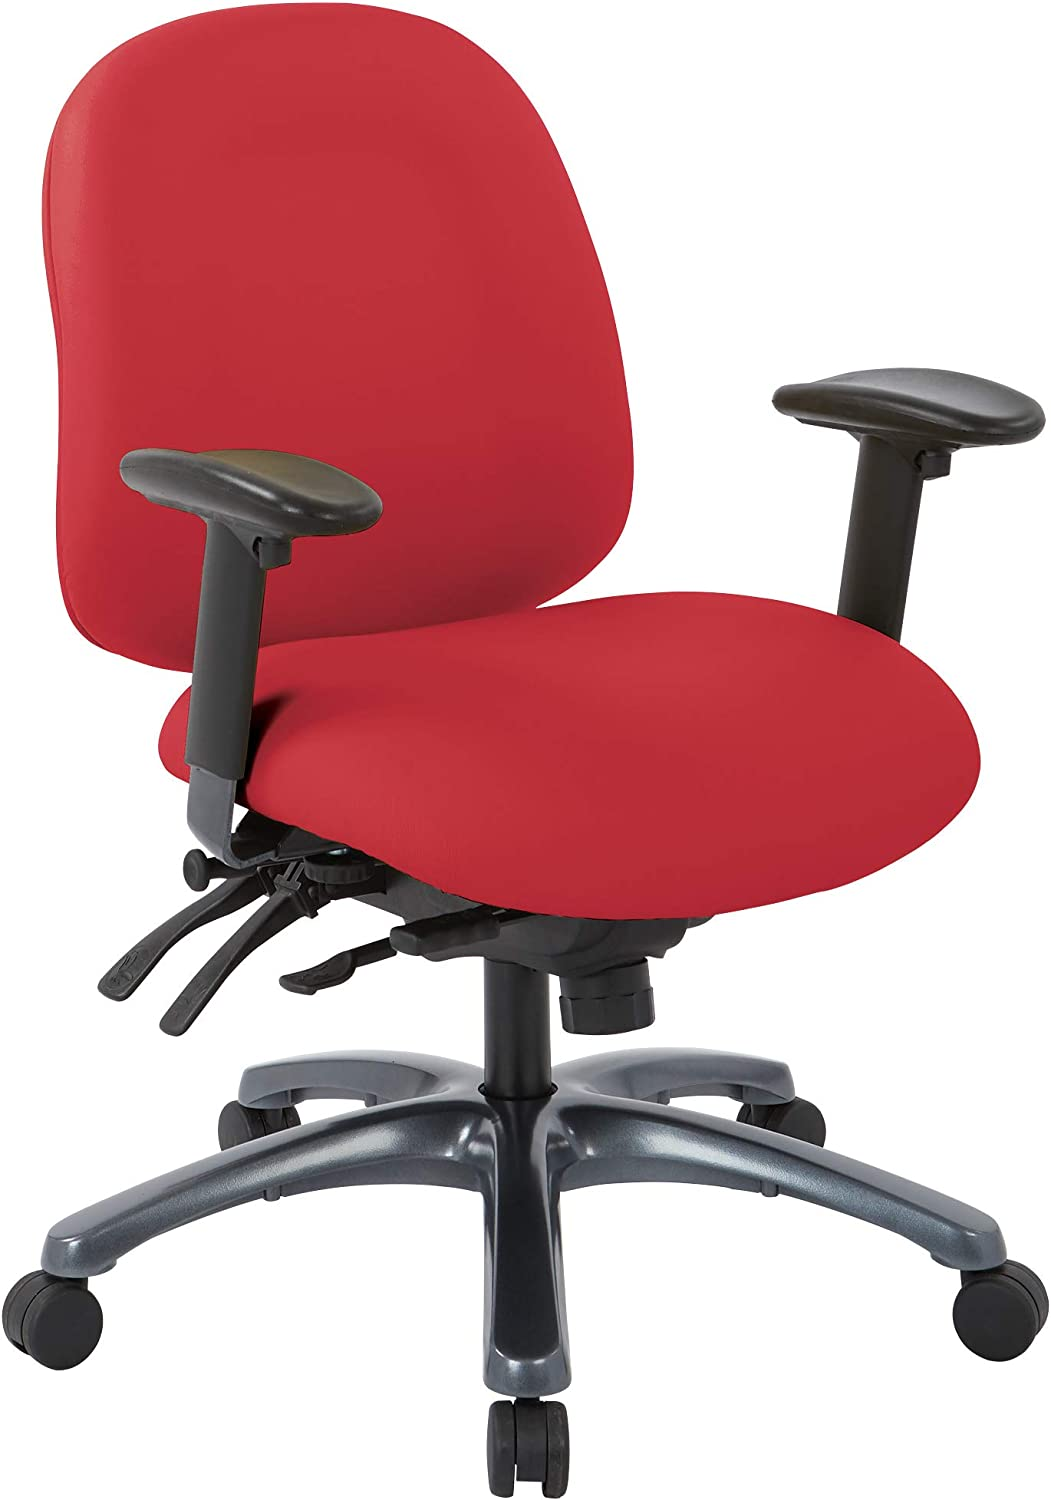 Office Star 8500 Series Multi-Function Mid Back Executive Ergonomic Office Chair with Seat Slider and Titanium Finish Base, Dillon Lipstick Fabric